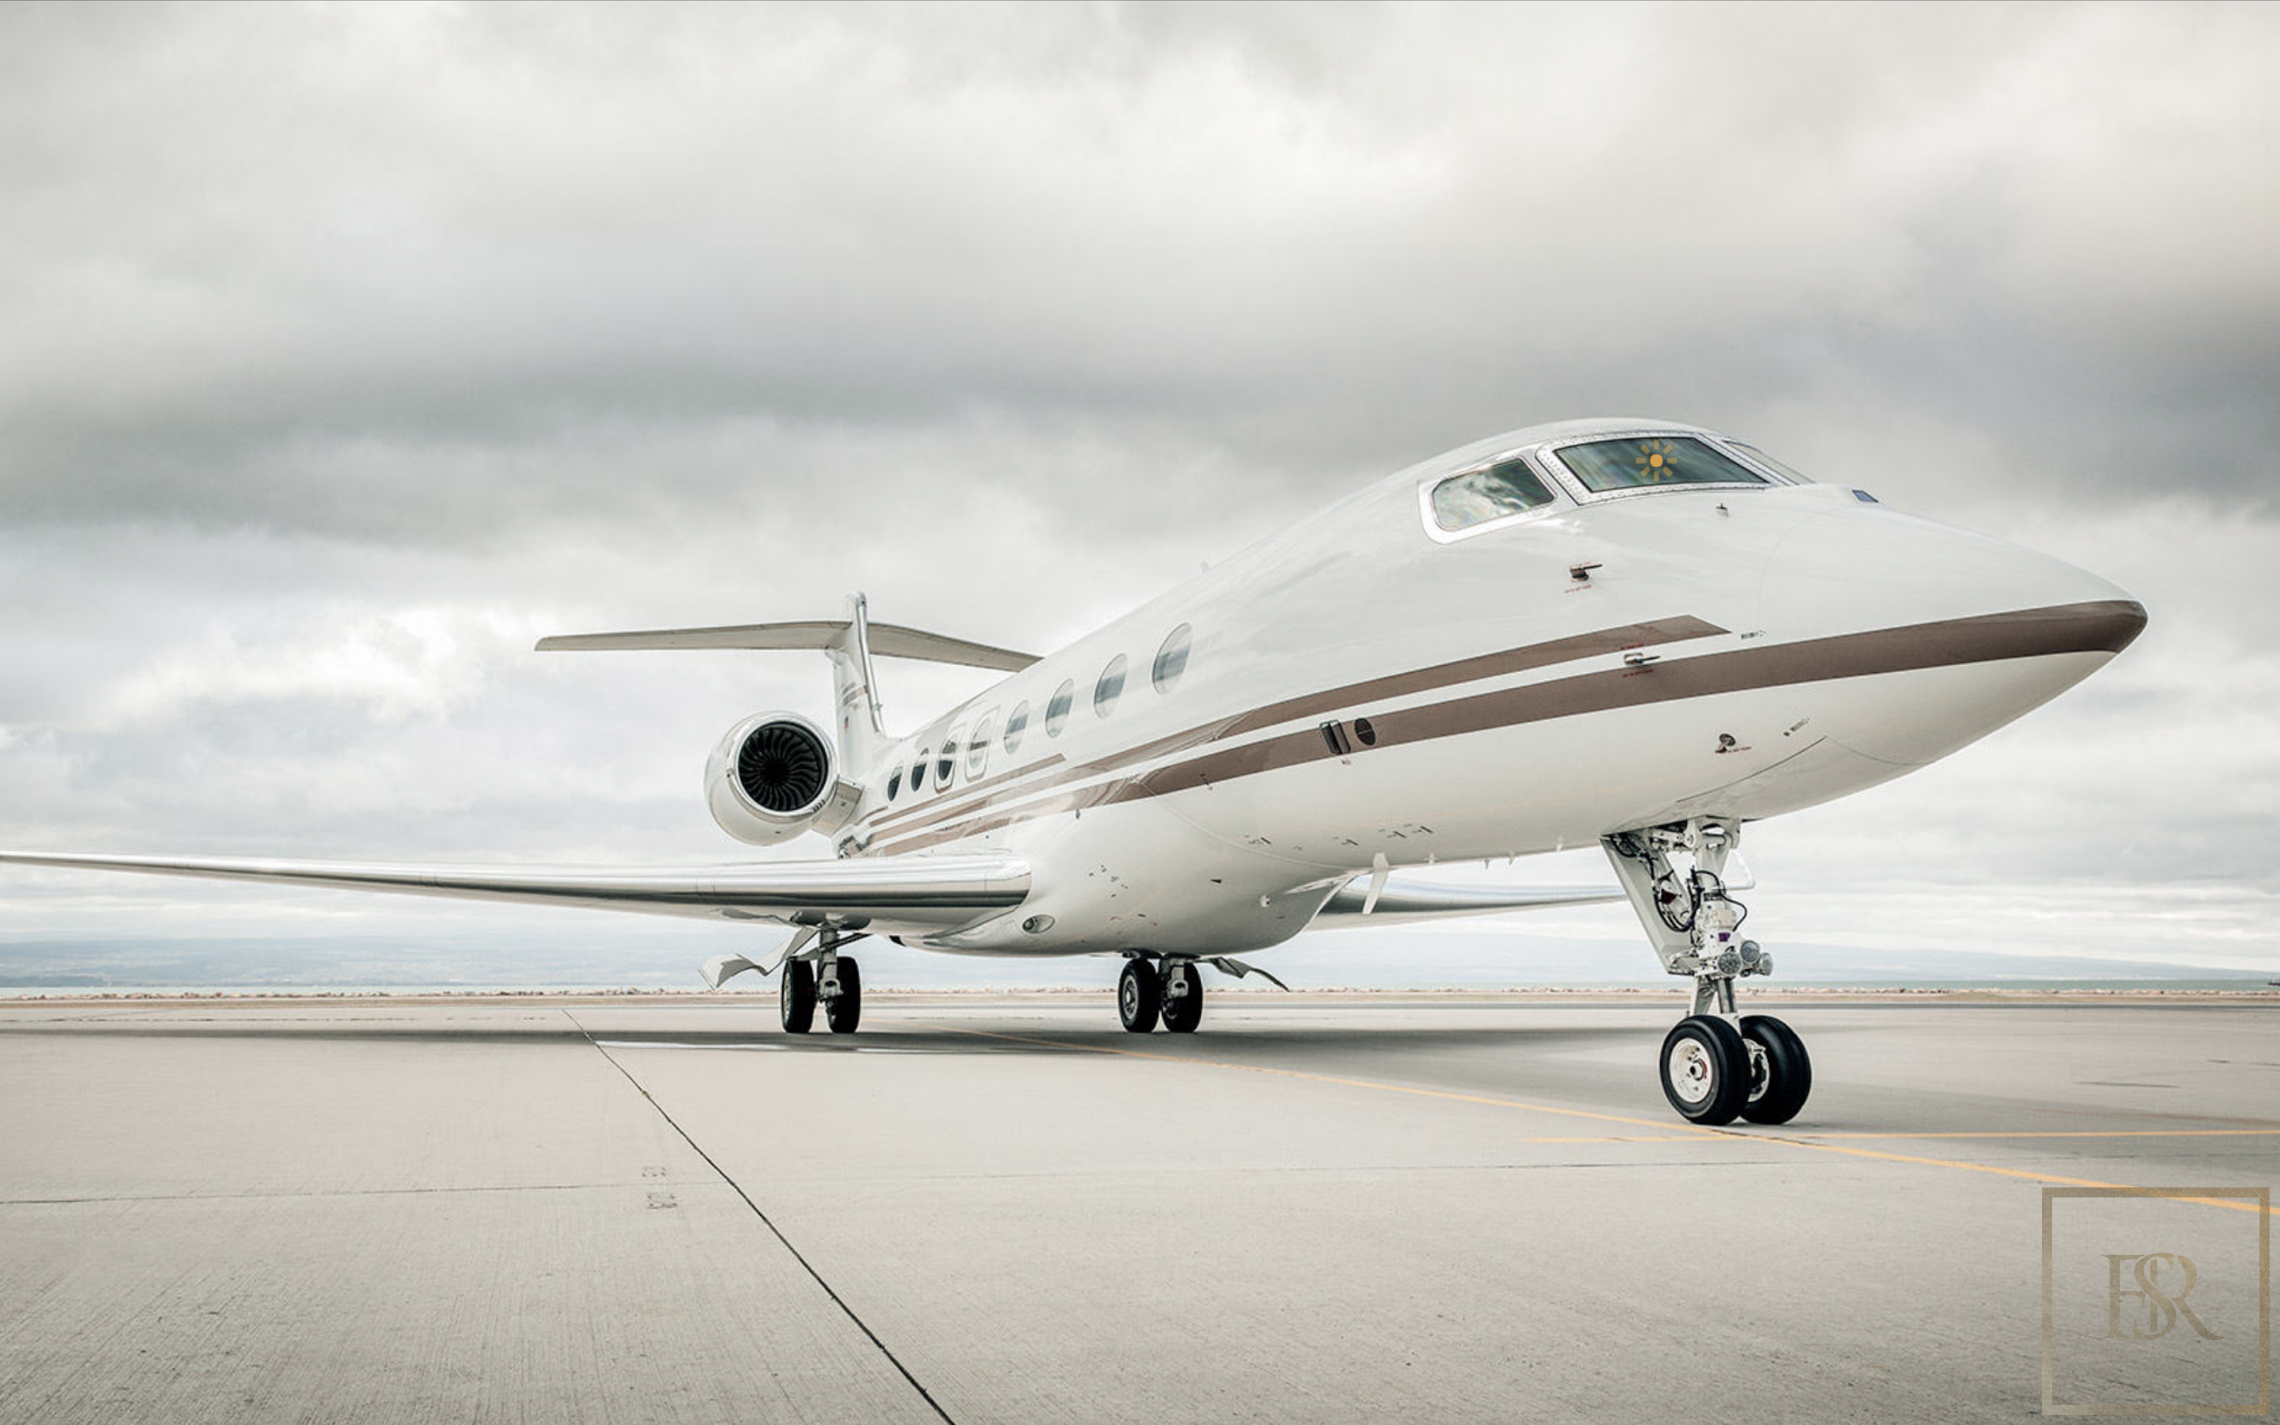 Most expensive aircraft, luxury private jets Bombardier Global express, Falcon Dassault, Gulfstream for charter for super rich